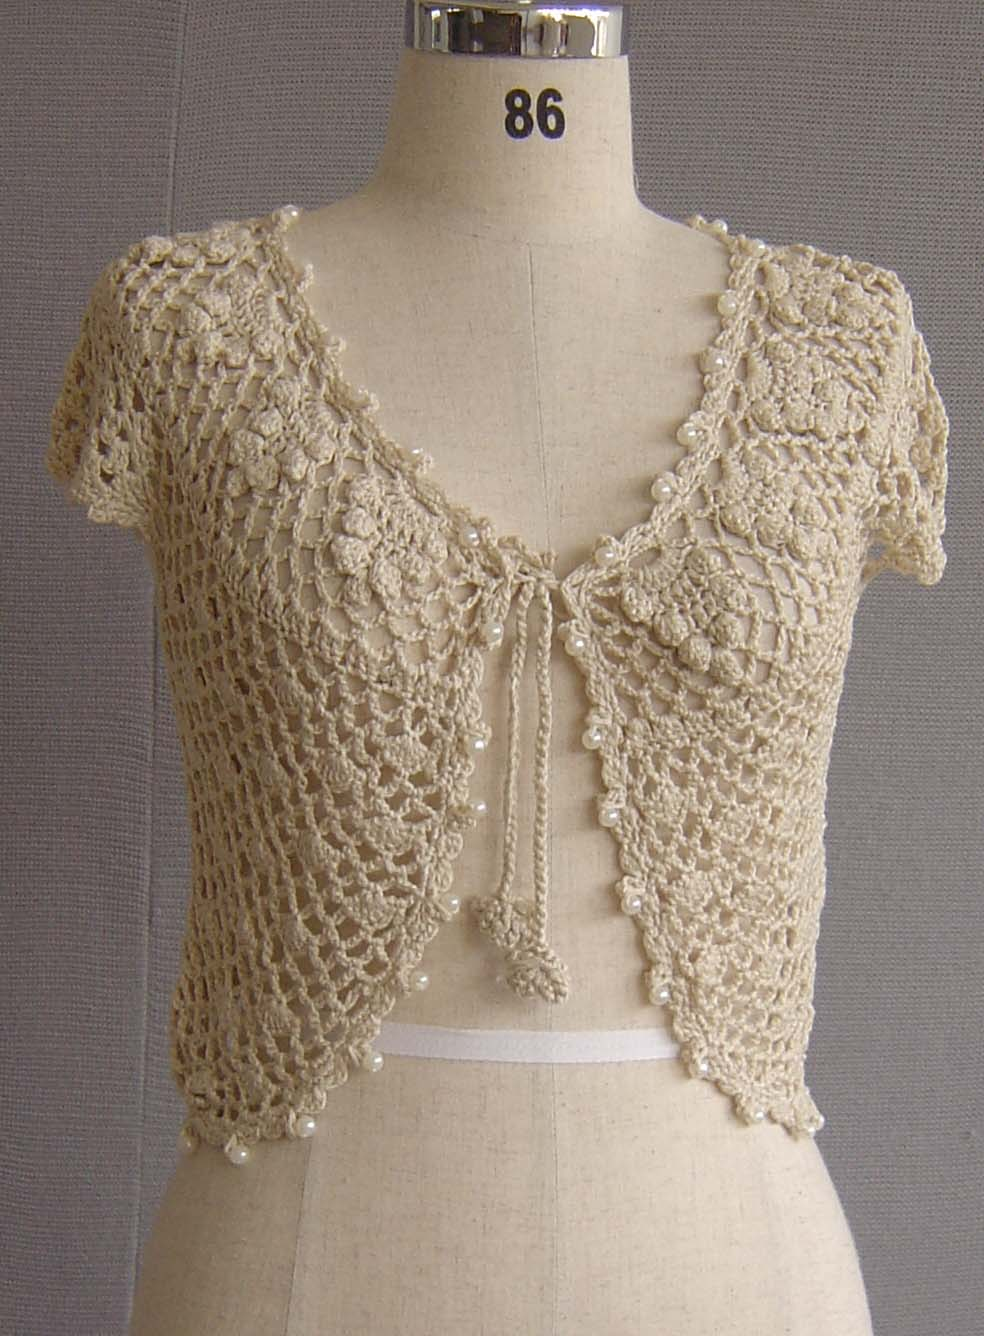 HAND CROCHET SWEATER Crochet For Beginners